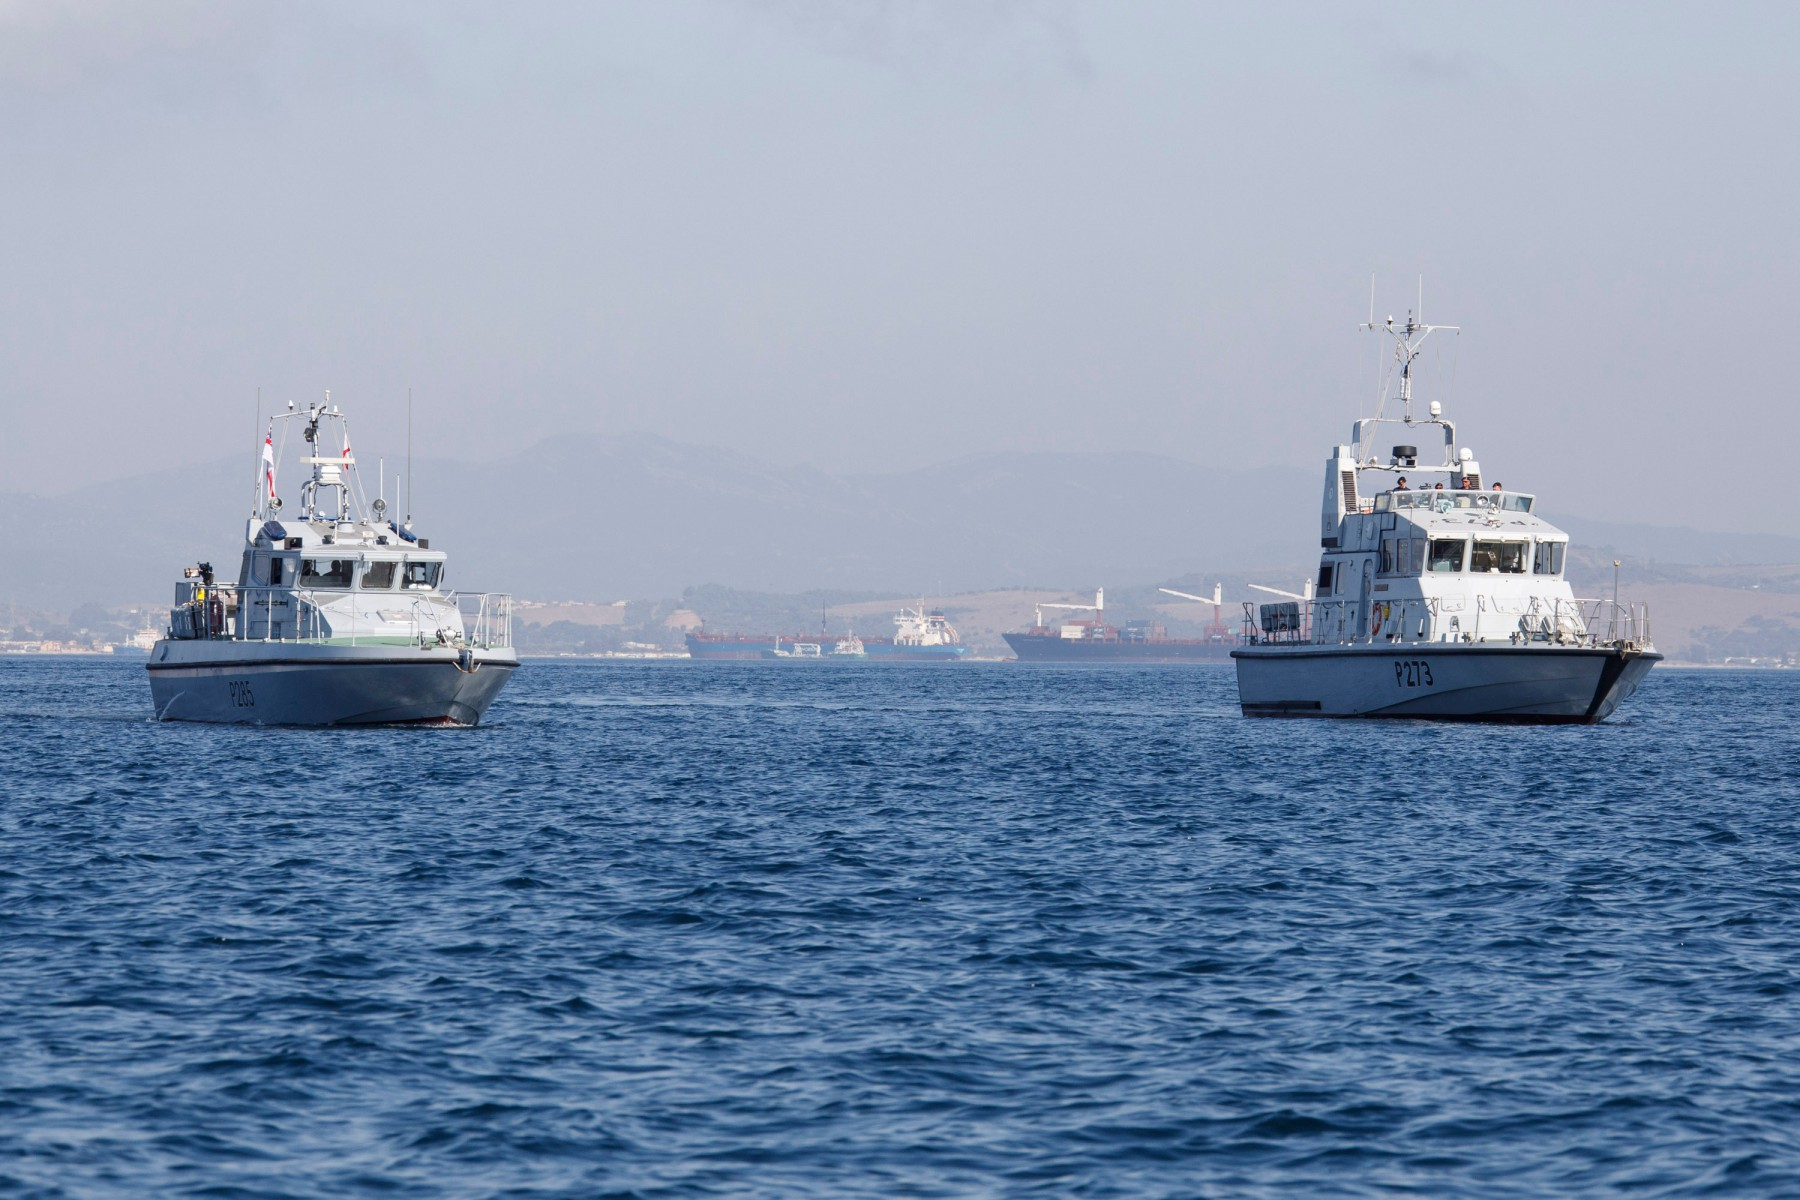 Royal Navy Gibraltar Squadron with four boats at sea.